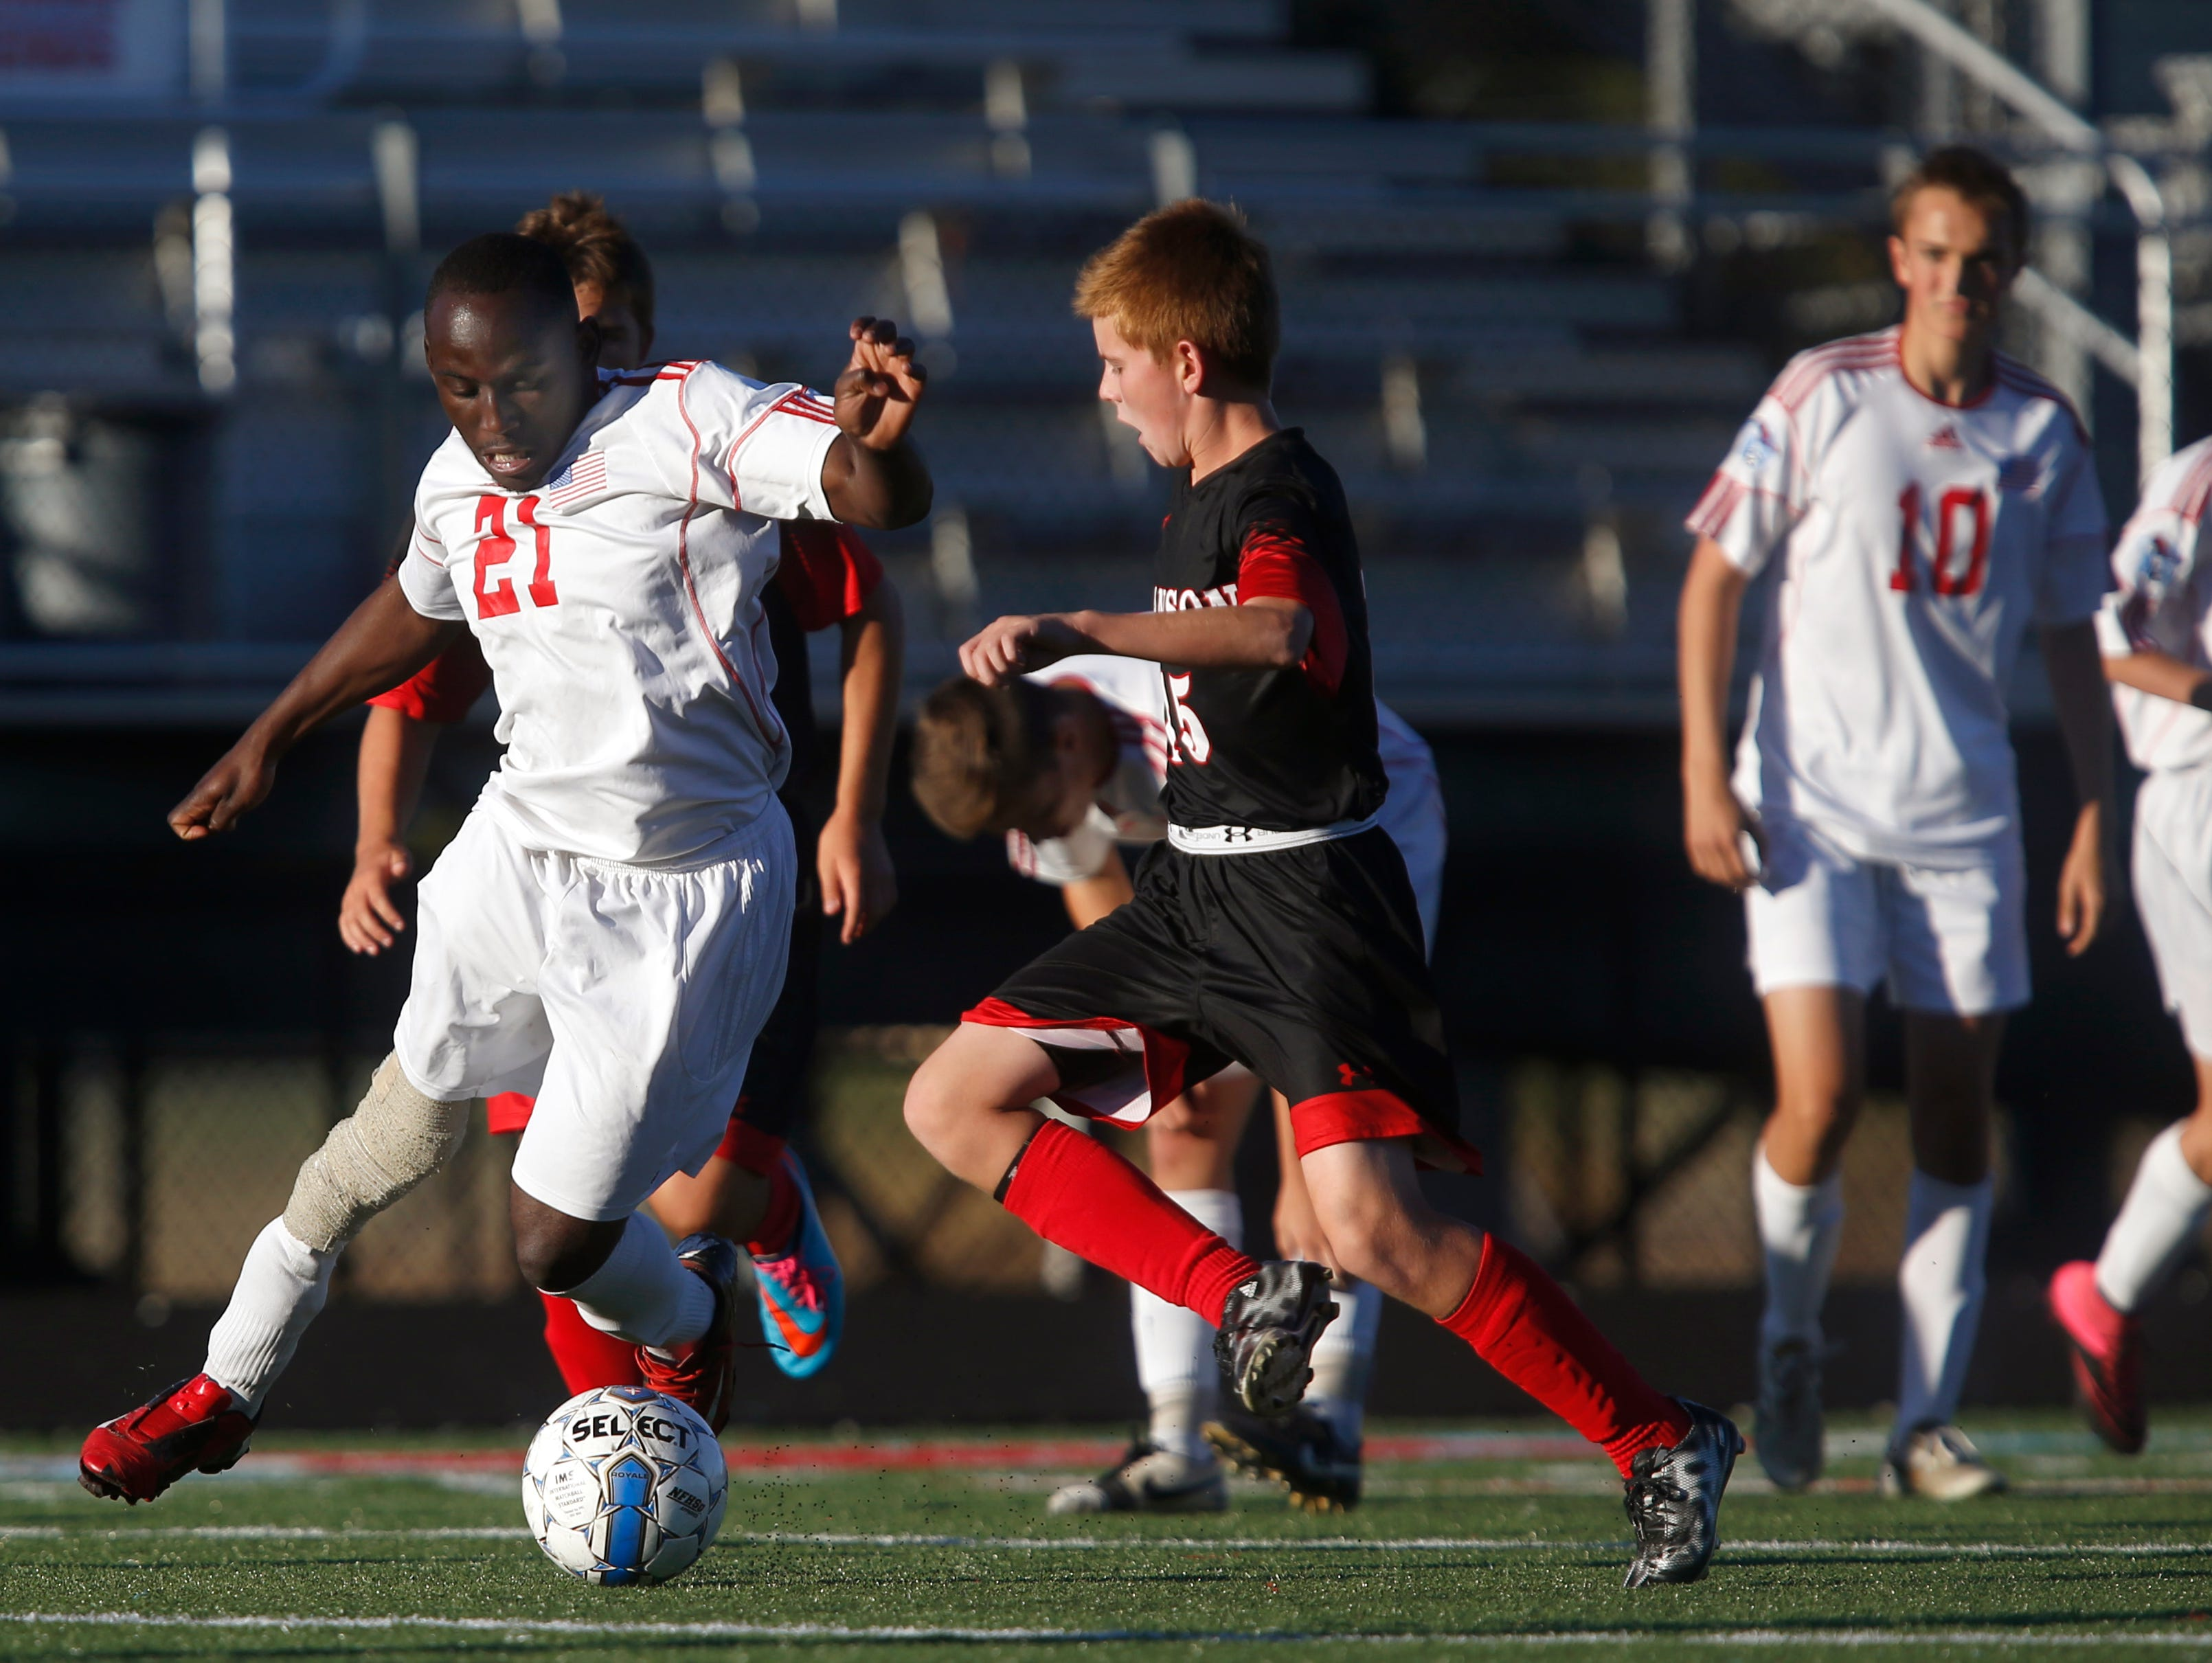 Glendale senior David Odun-Ayo competes for the ball during a soccer game against Branson on Tuesday, Oct. 13, 2015. Odun-Ayo, who was born with proximal femoral focal deficiency, and is missing part of his right leg, runs and walks with a prosthetic leg is playing organized soccer for the first time.